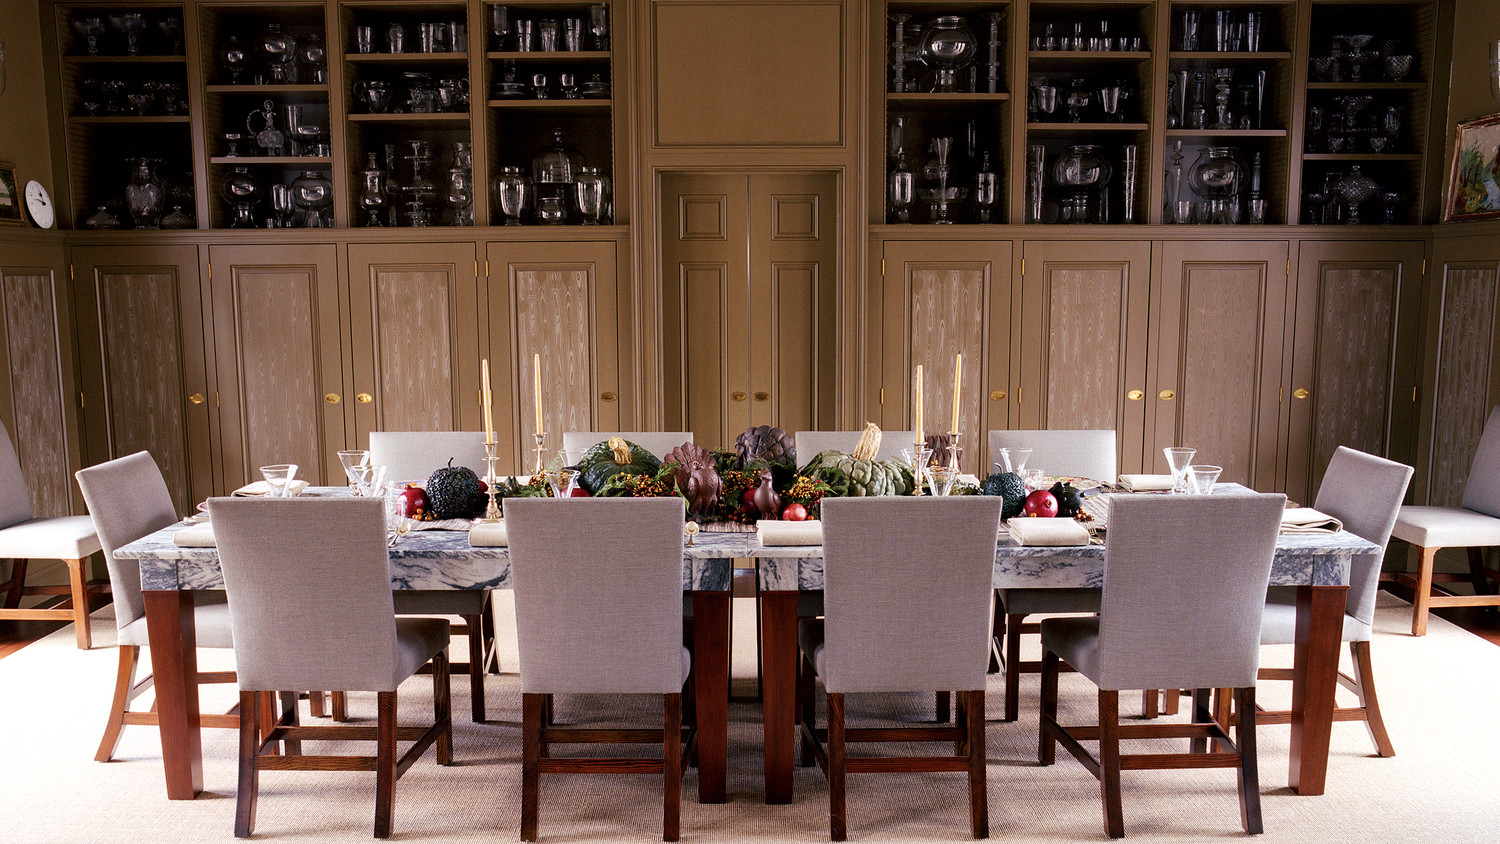 Martha stewart dining room furniture - Martha stewart dining room furniture ...